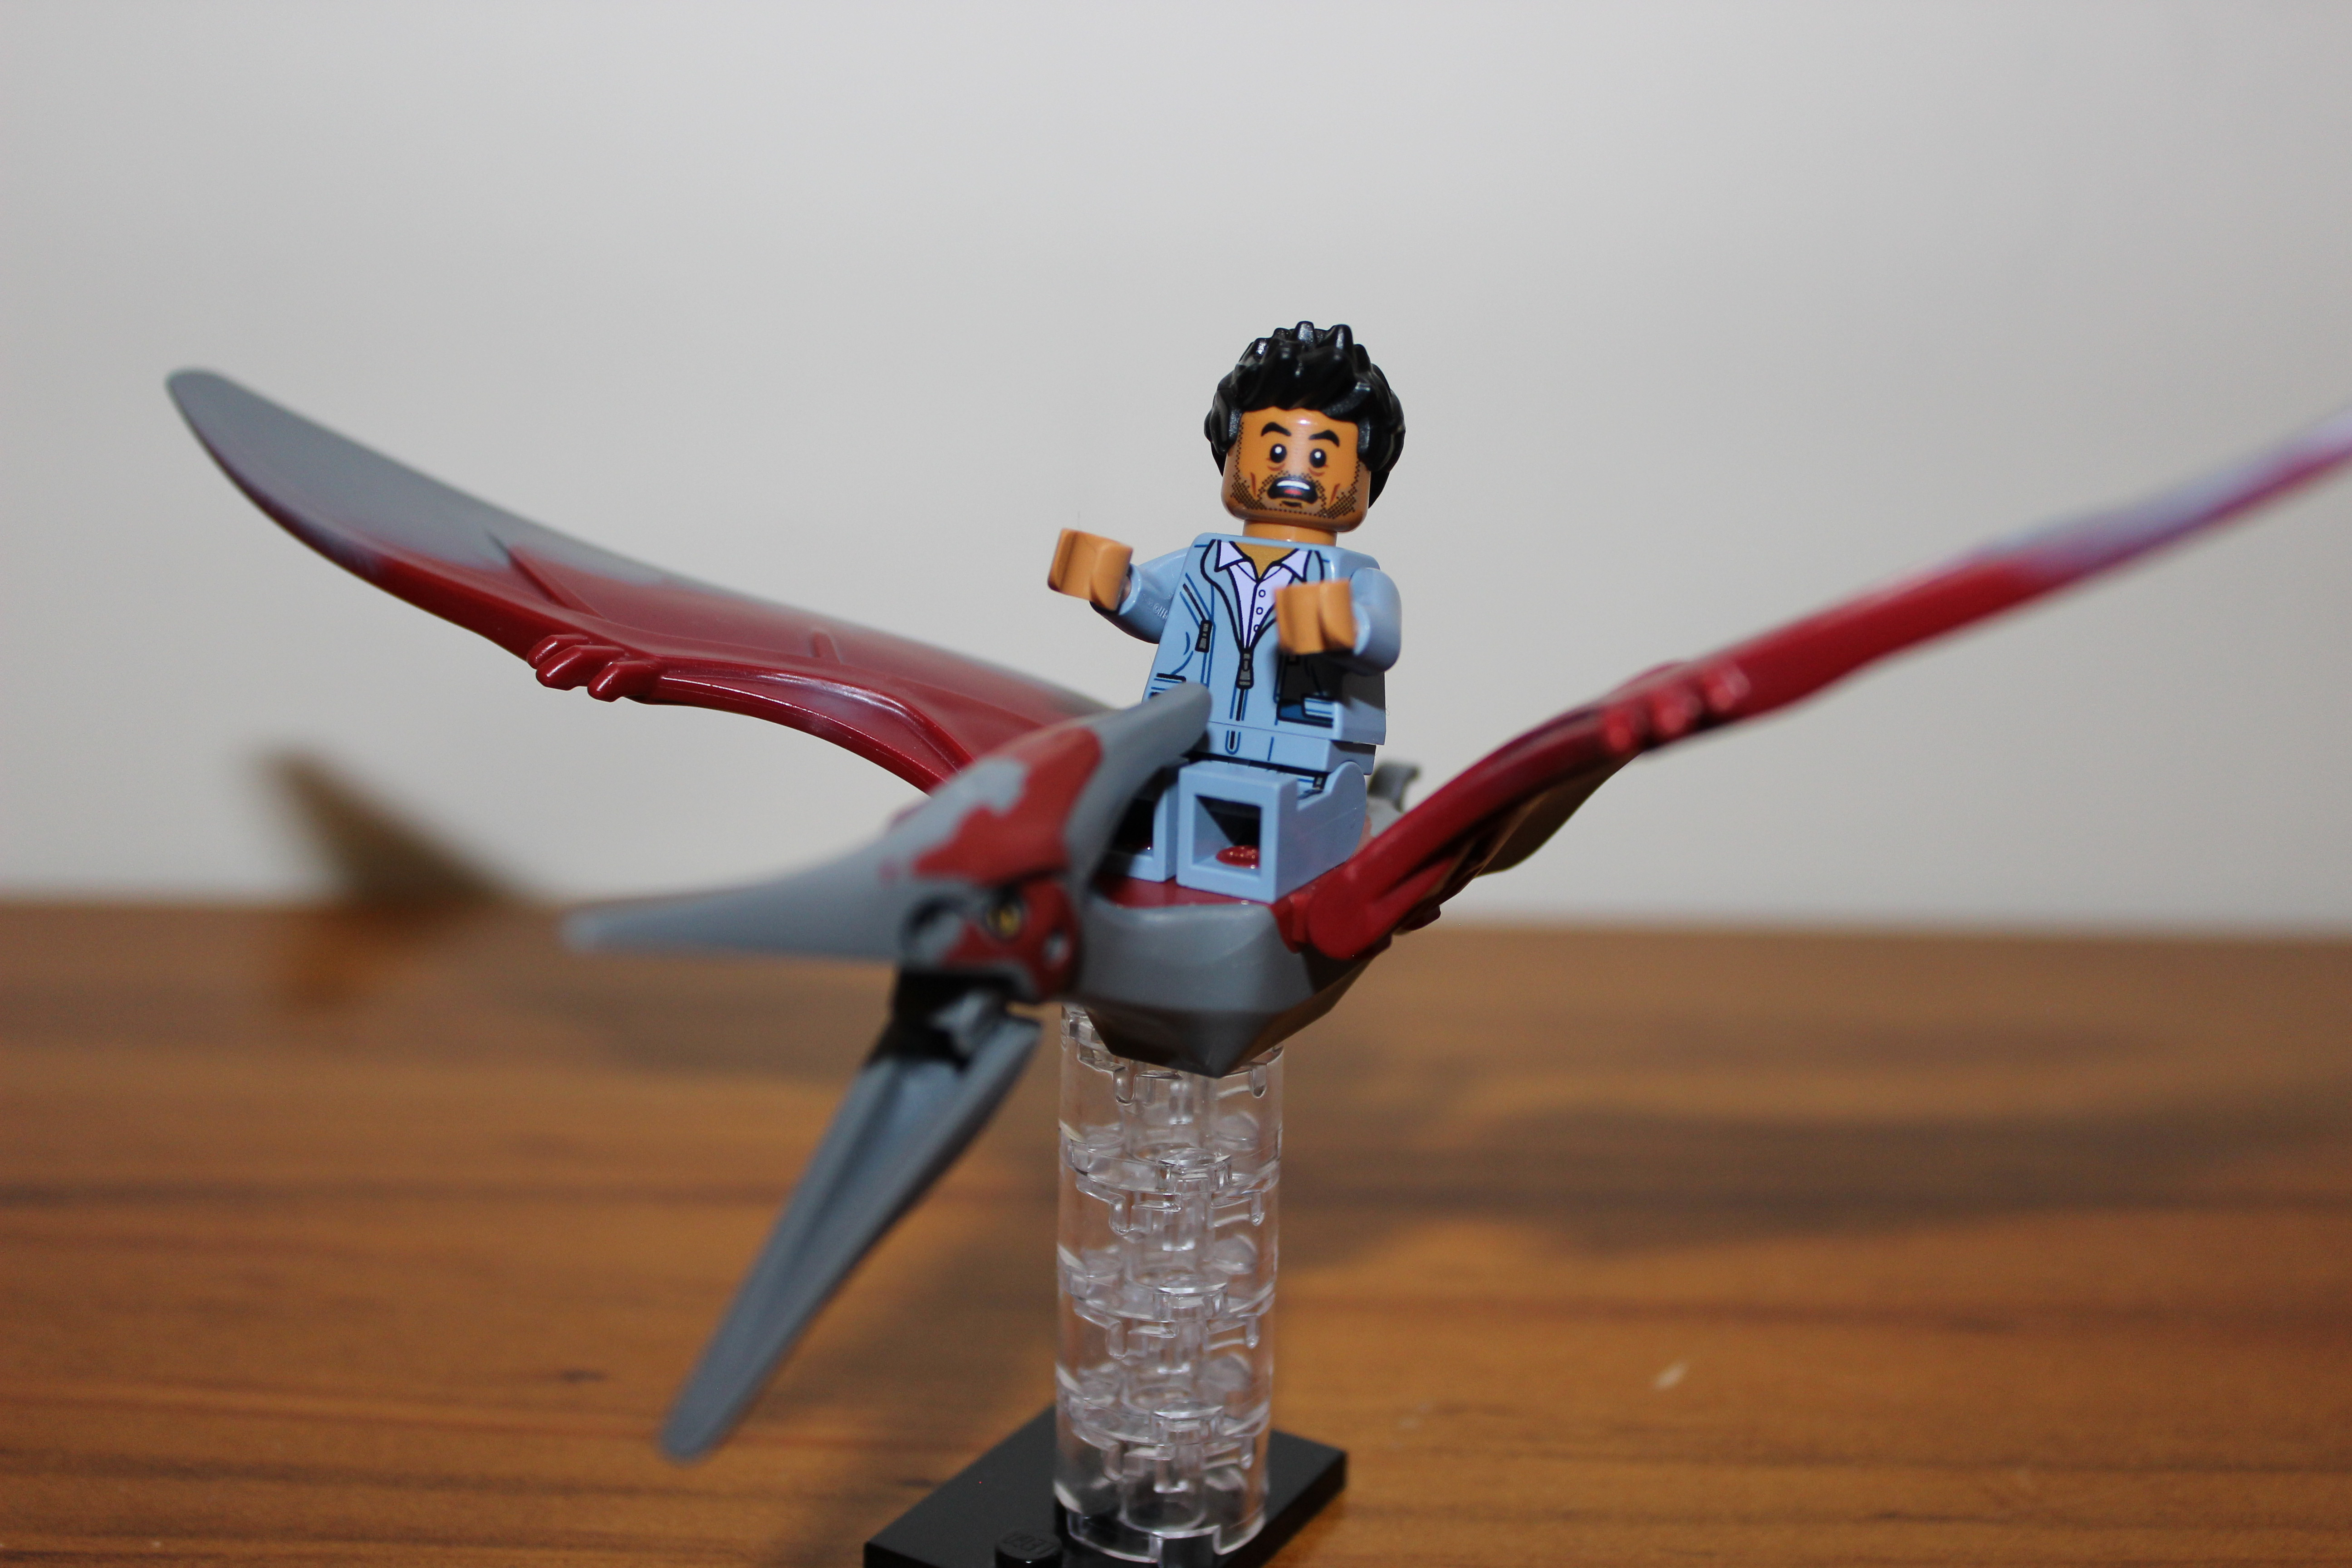 make a flying helicopter with Lego Jurassic World Pteranodon Capture 75915 Review on Panfu Vs Club Penguin also When It  es To Flight Suits together with Ornithopters Making Maximally Efficient Man Made Wings further Five Dovers C 5m Airlifters Cleared Flying Issue Ball Screw moreover Watch.